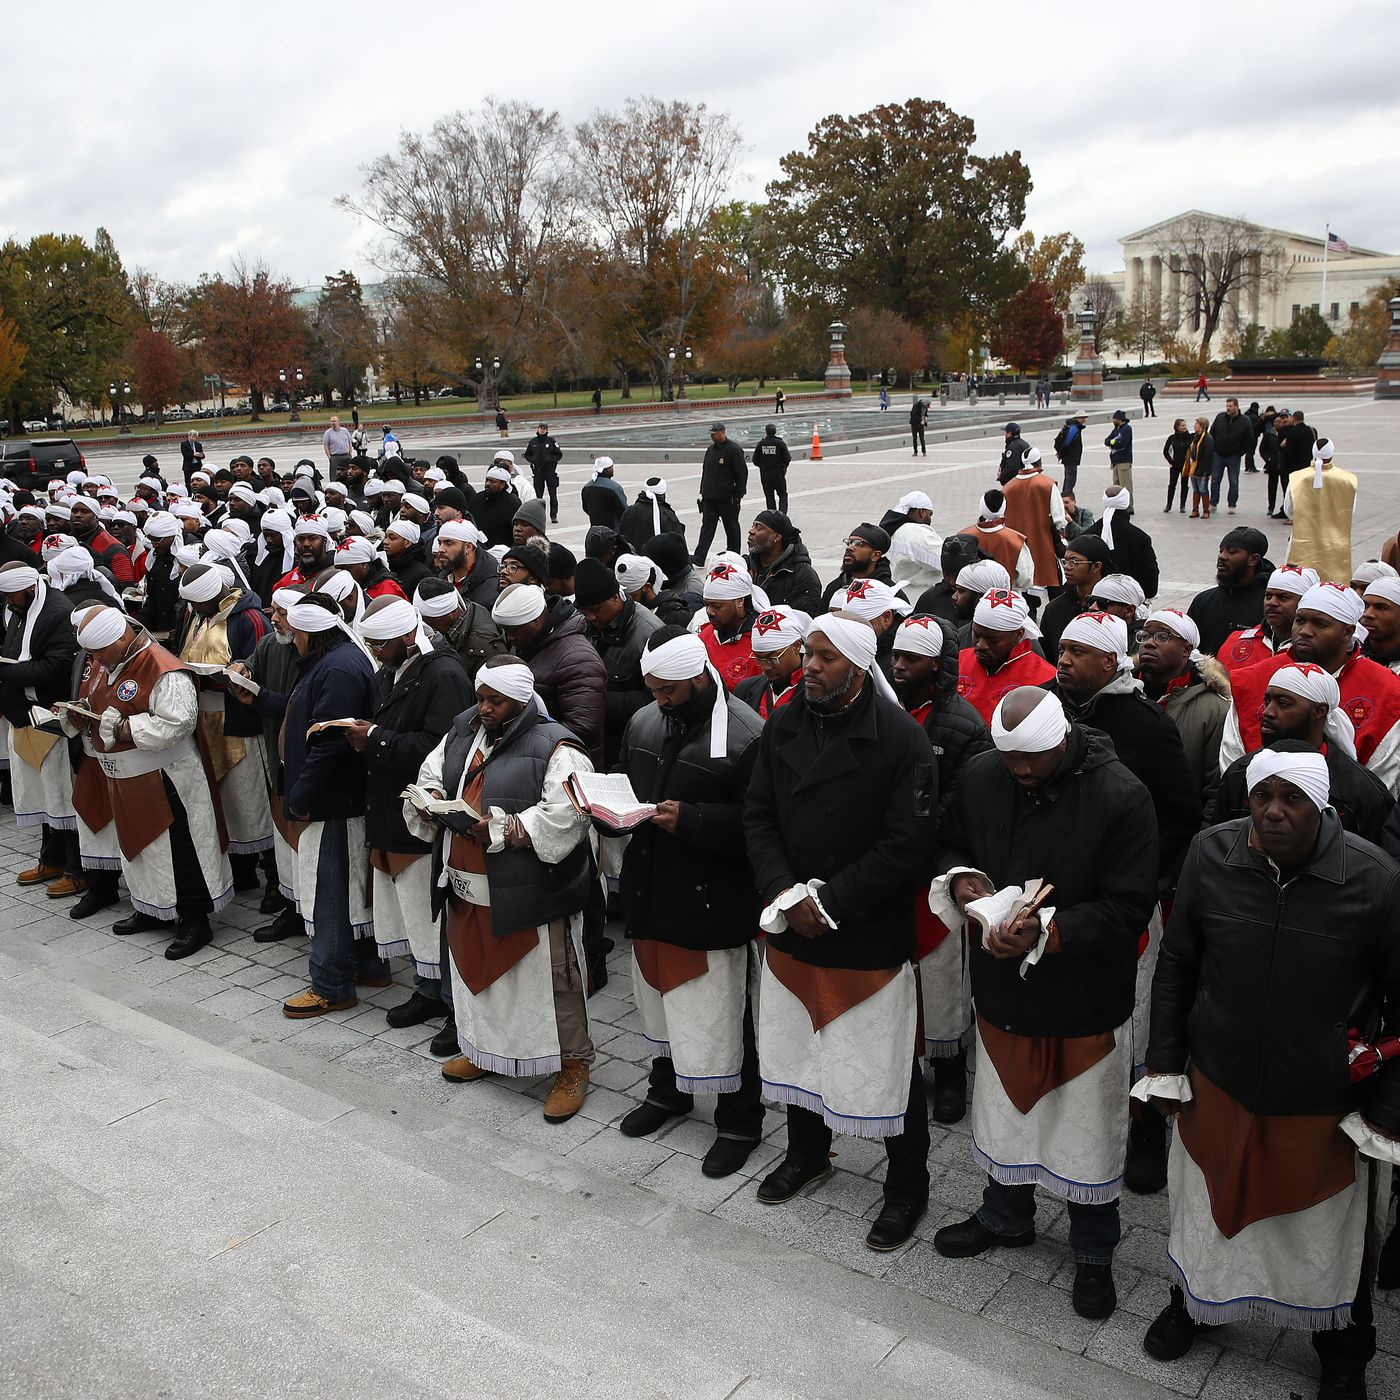 The Black Israelites' connection to the Covington story